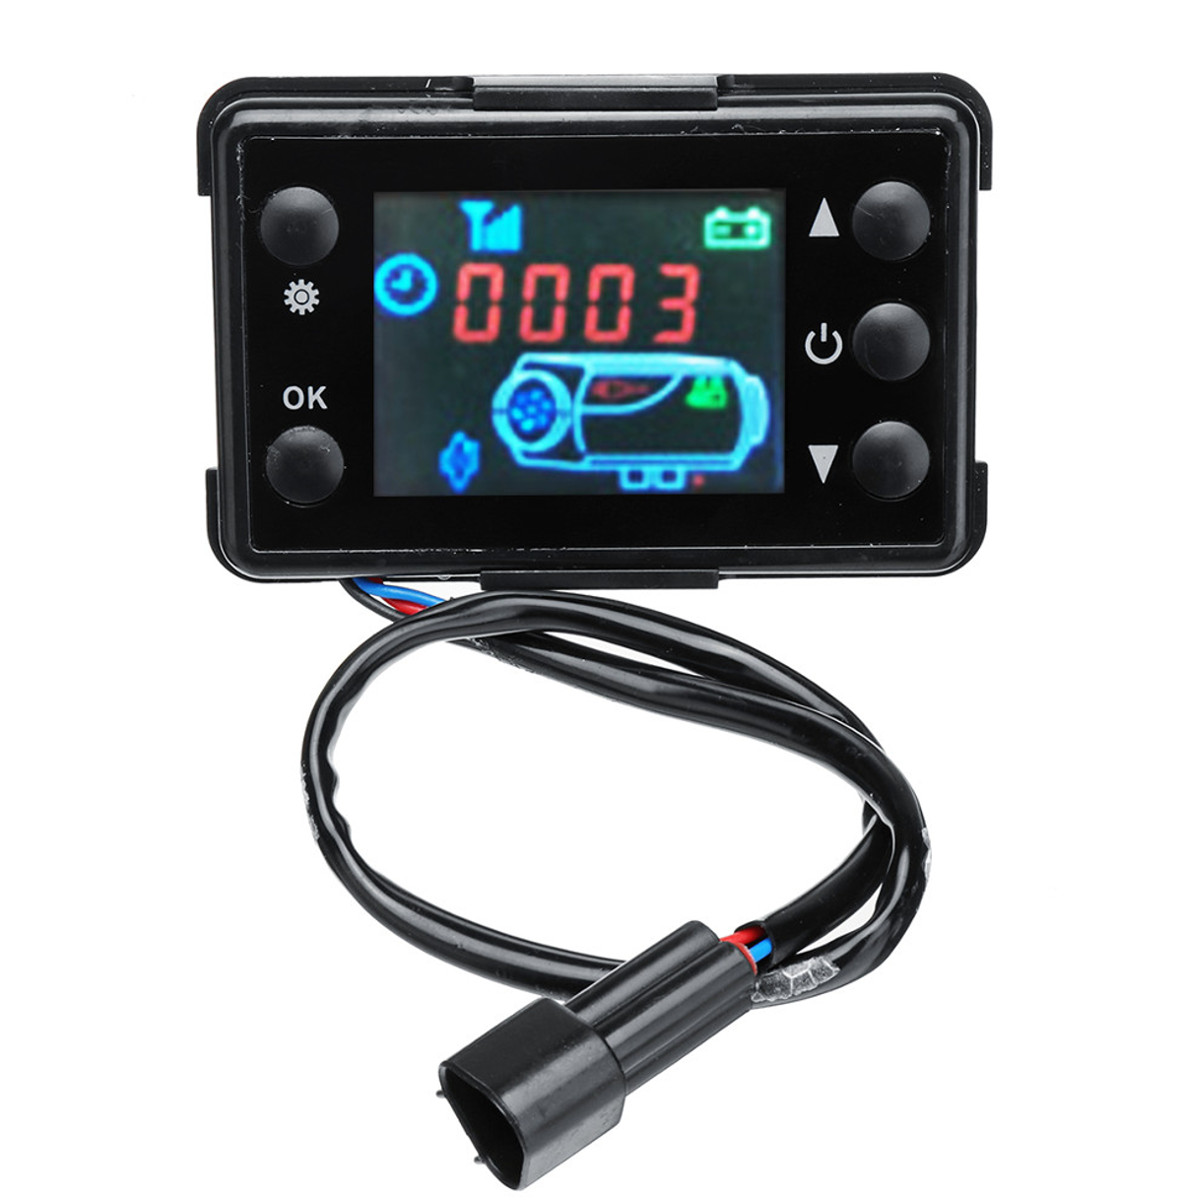 Hospitable 12v/24v 3/5kw Lcd Monitor Parking Heater Switch Car Heating Device Controller Universal For Car Track Air Heater Automobiles & Motorcycles Electric Vehicle Parts